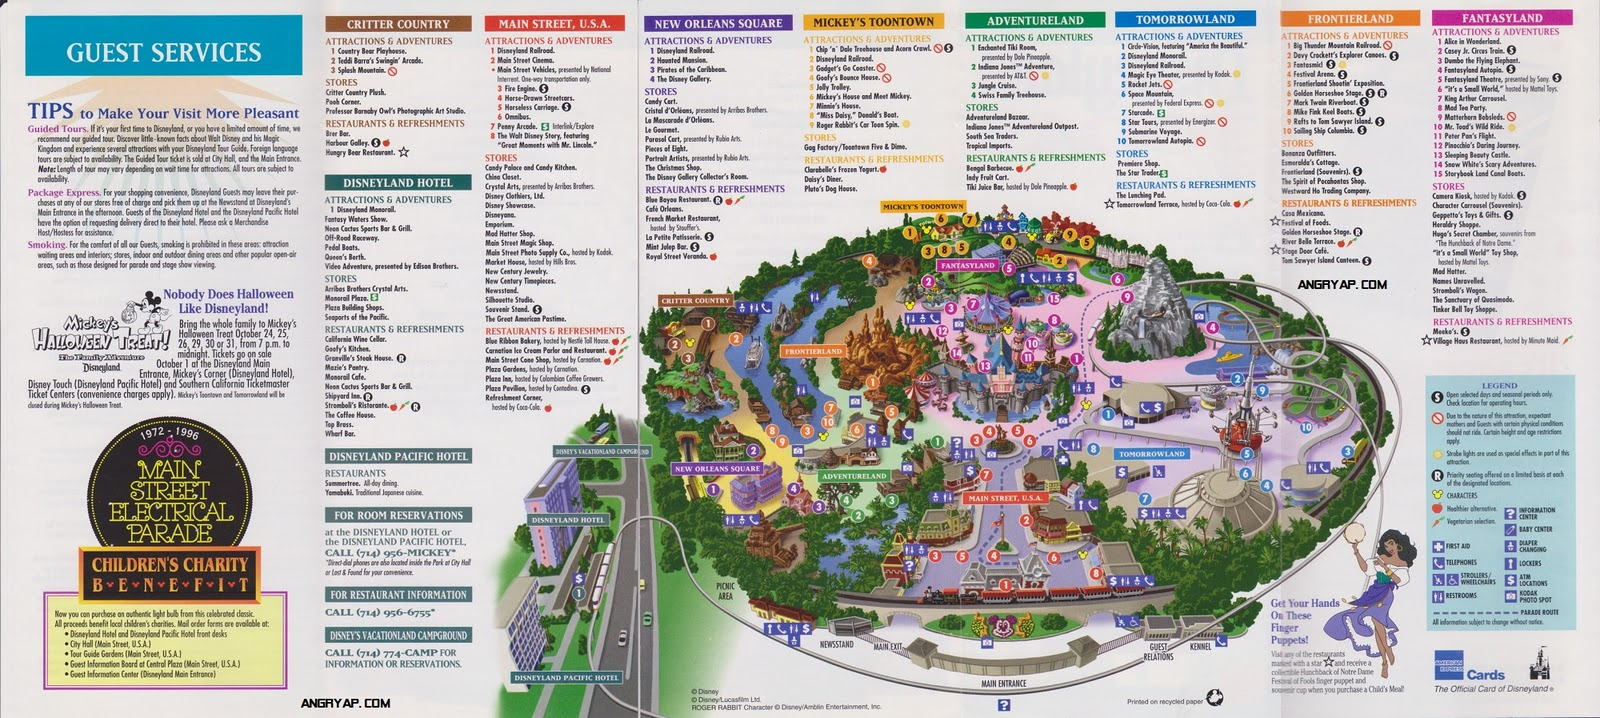 Disneyland Guide Map From Map California Disney World California Map - Disney World California Map